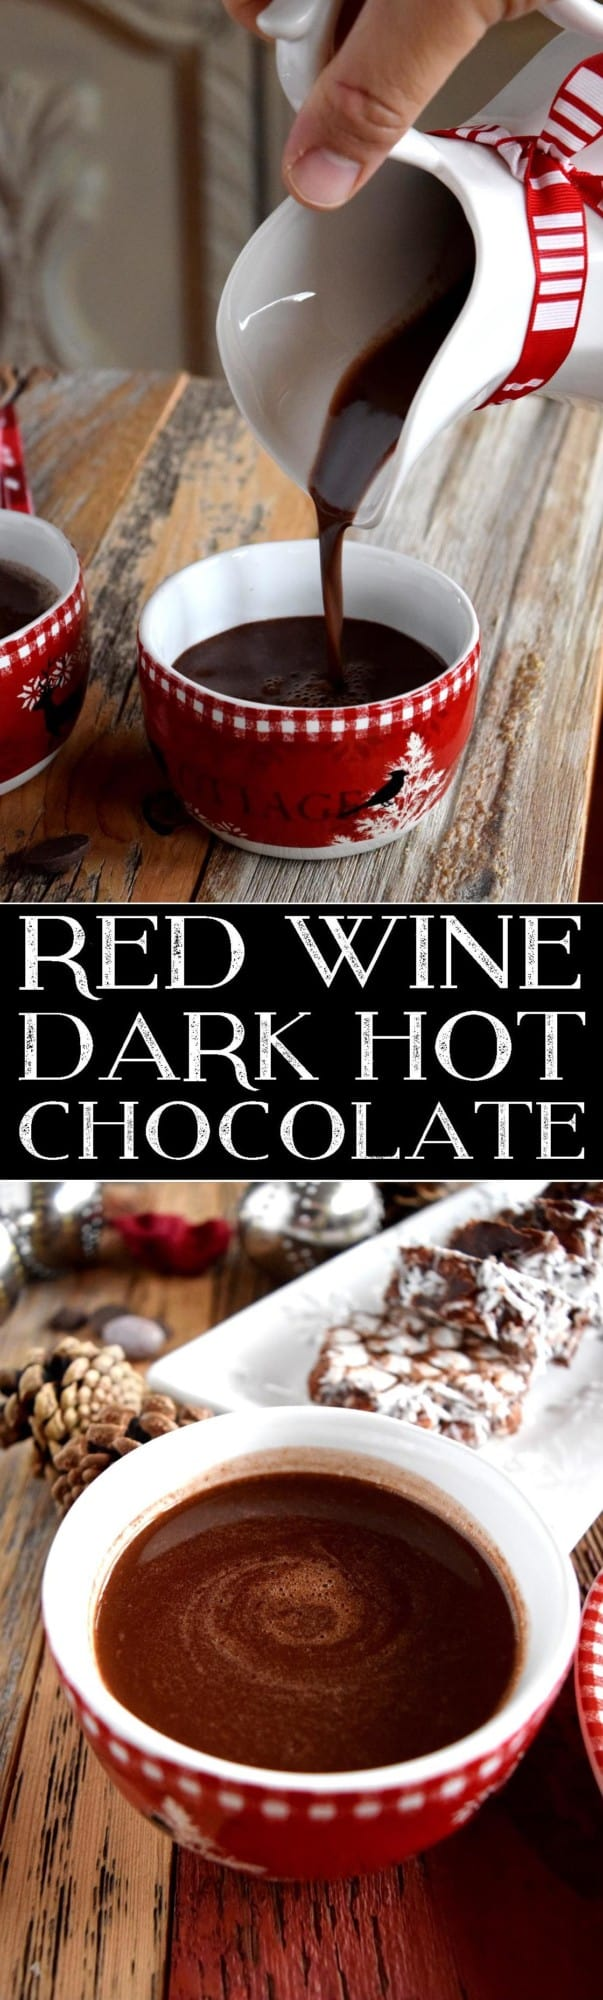 red-wine-dark-hot-chocolate